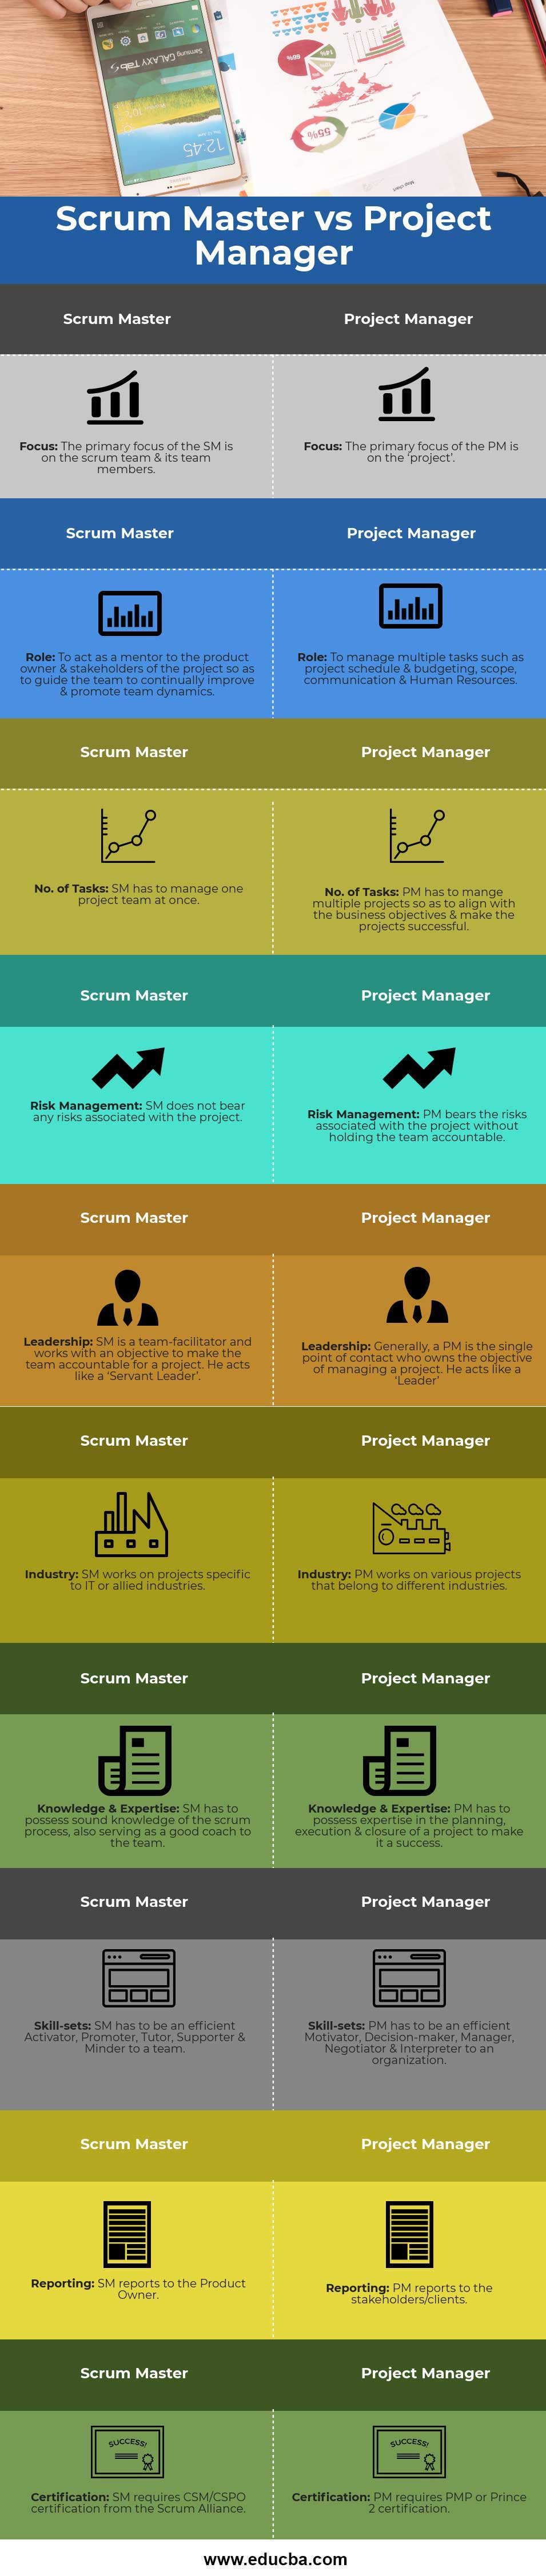 Scrum-Master-vs-Project-Manager-info